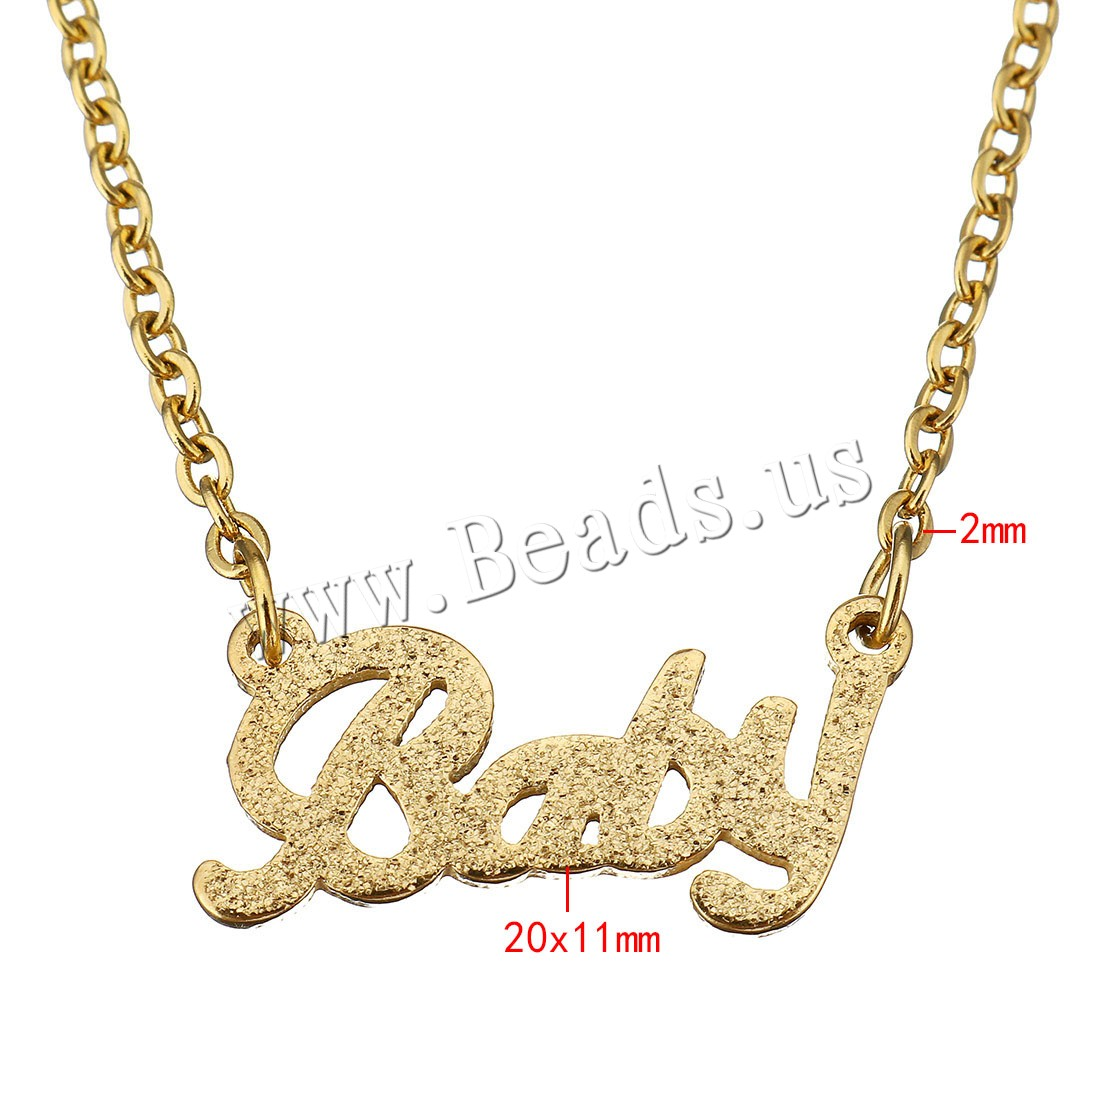 Buy Unisex Necklace Stainless Steel Letter word baby gold color plated oval chain & hollow & stardust 20x11mm 2mm Sold Per Approx 18 Inch Strand